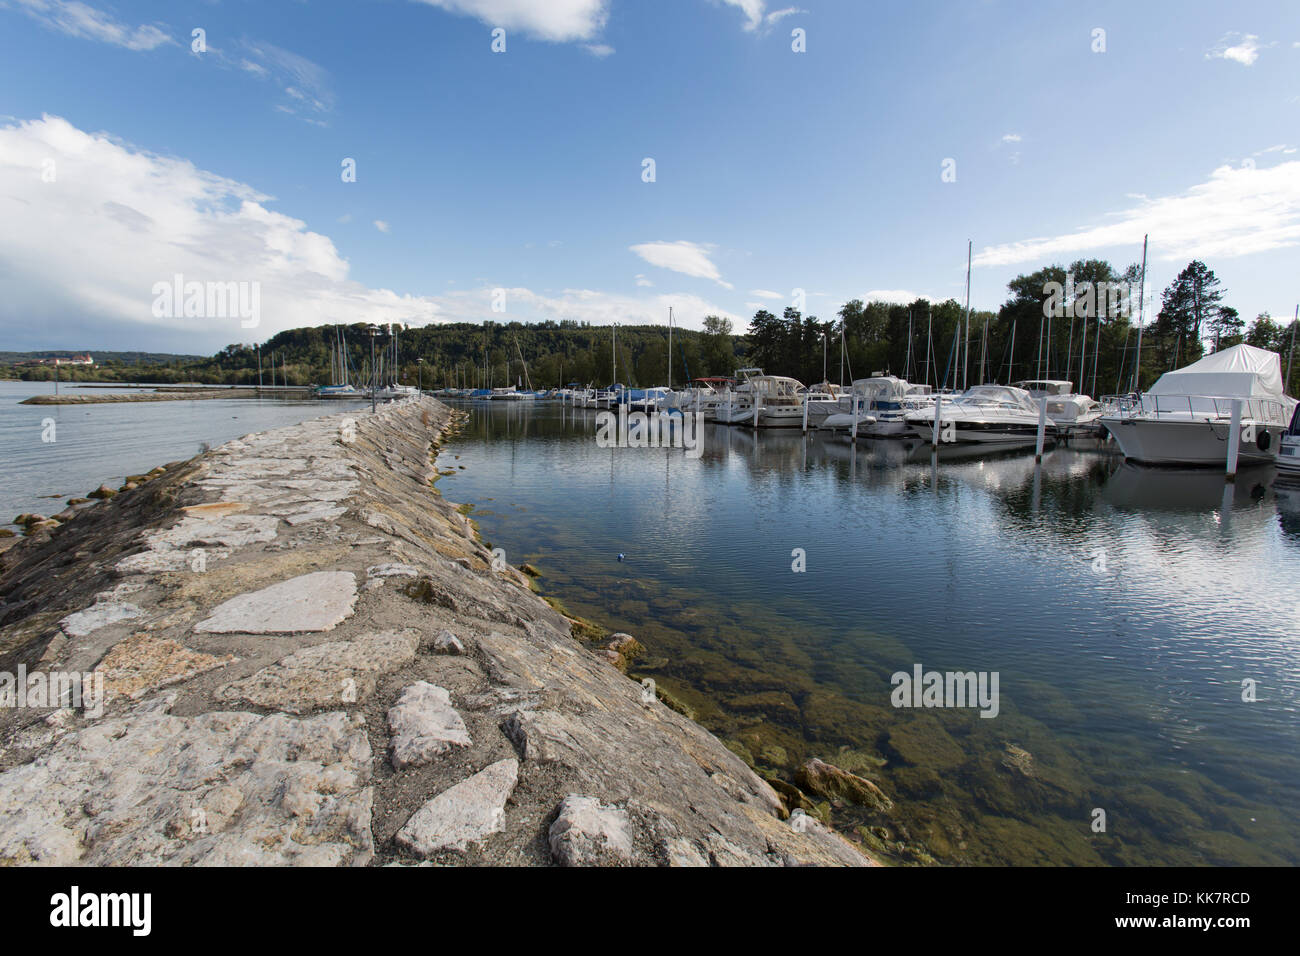 Town of Le Landeron, Switzerland. Picturesque view of Le Landeron marina at Lake Biel. - Stock Image